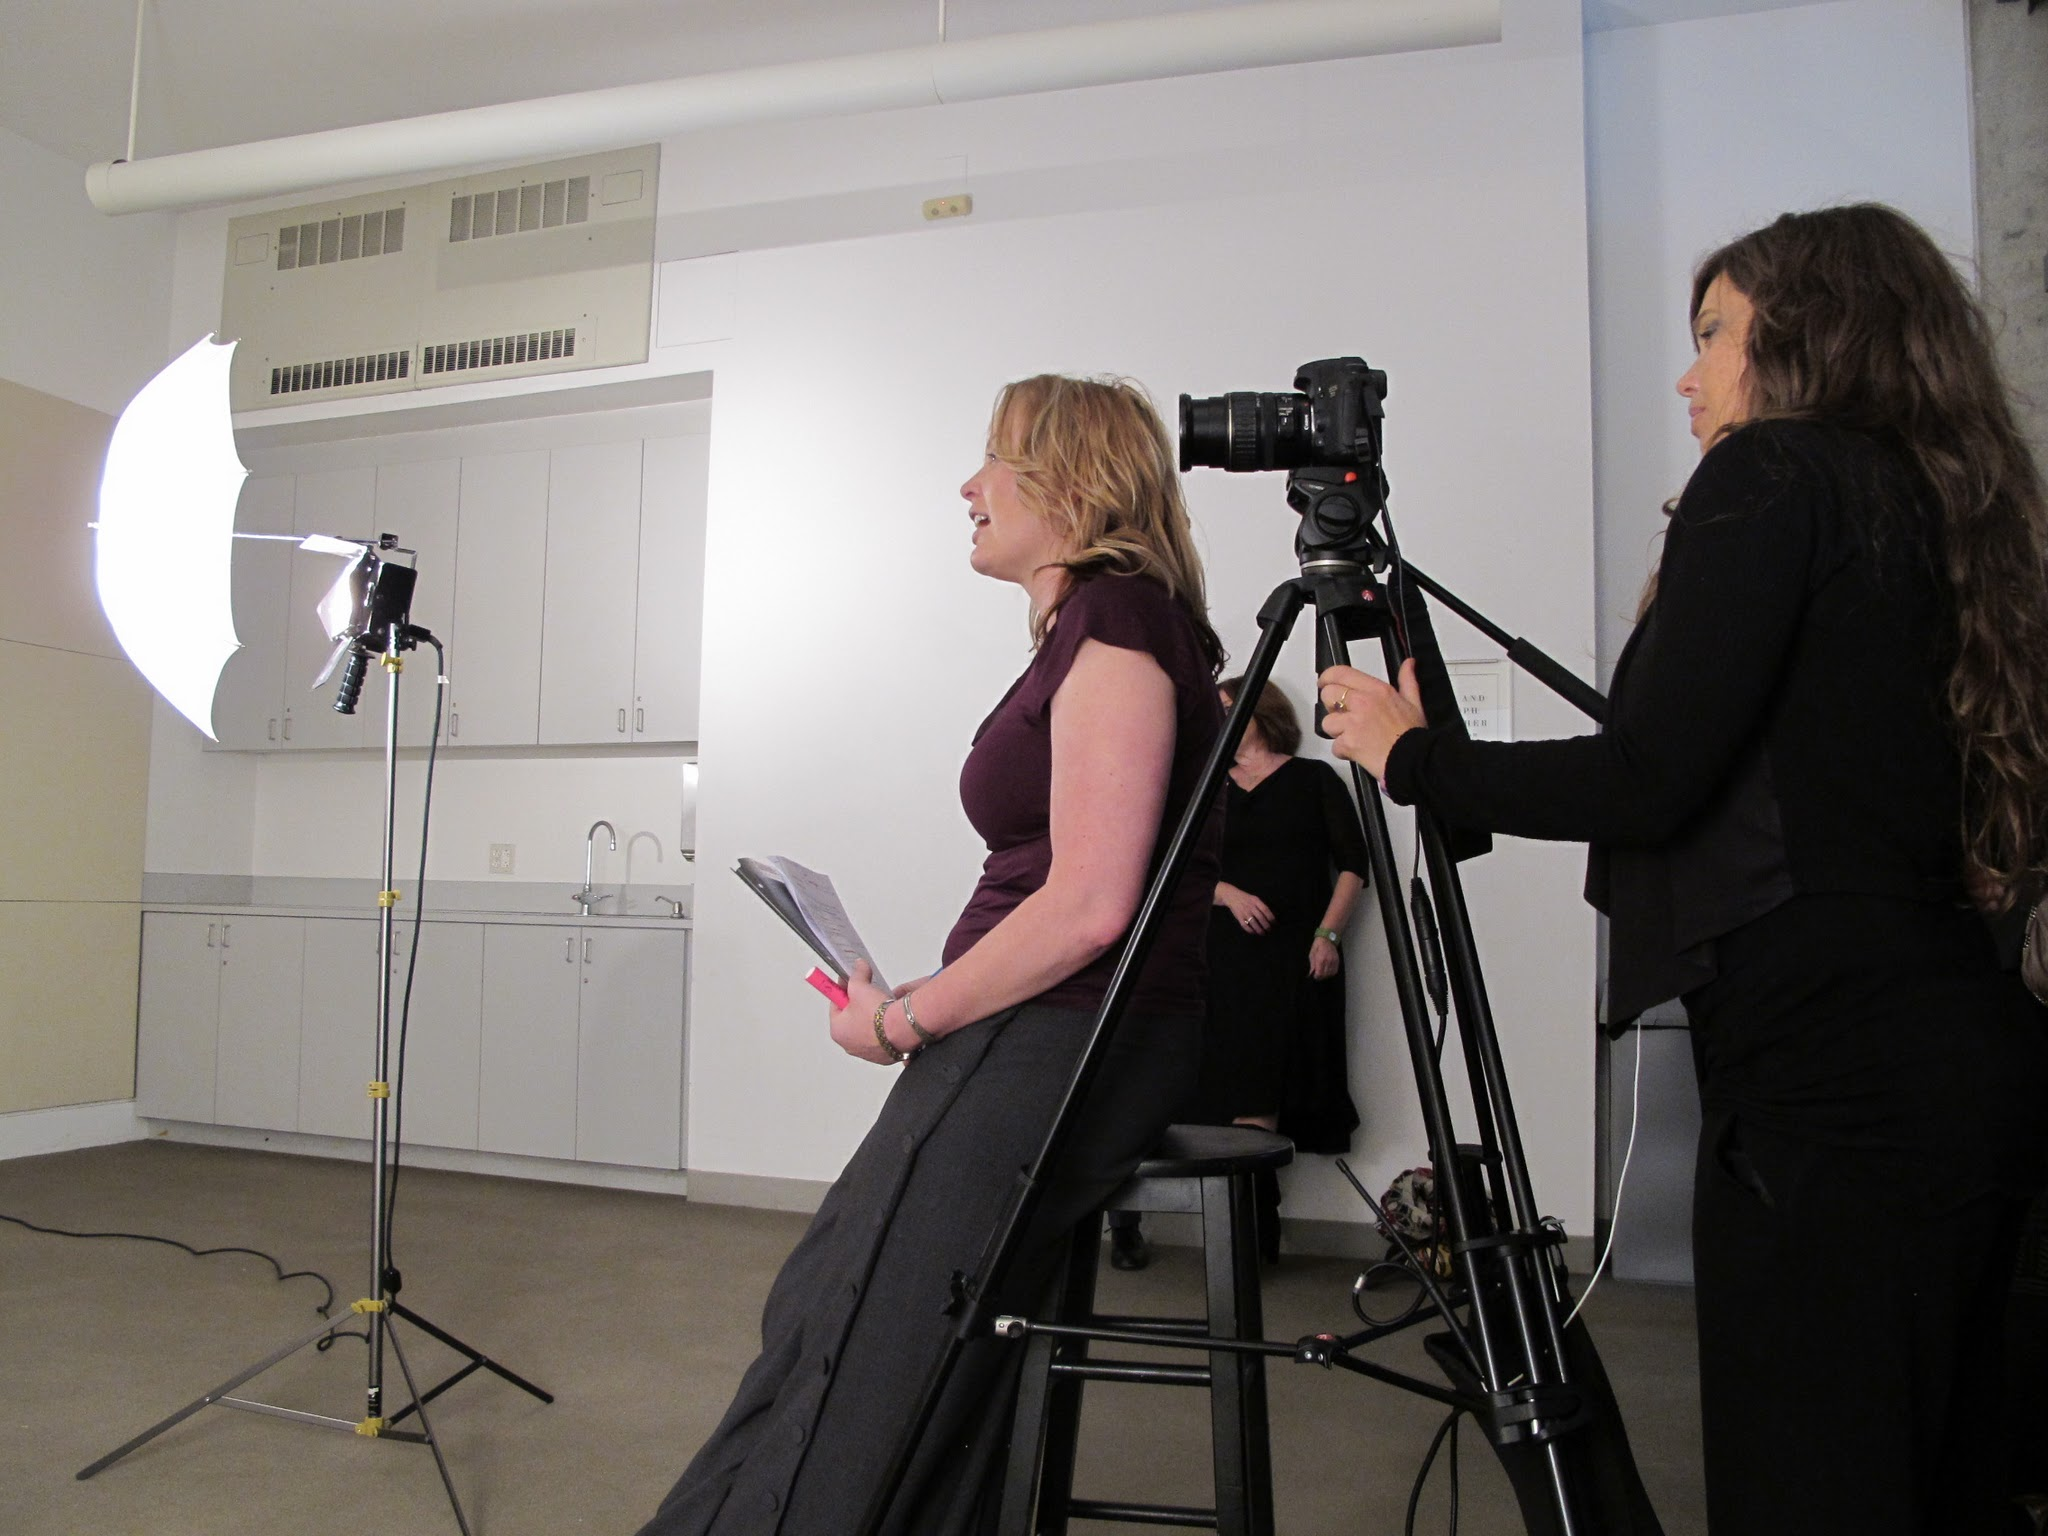 Photo: Our talented DP Ashley T. Hughes doing work. And of course, a My Story production is Tasha Oldham.